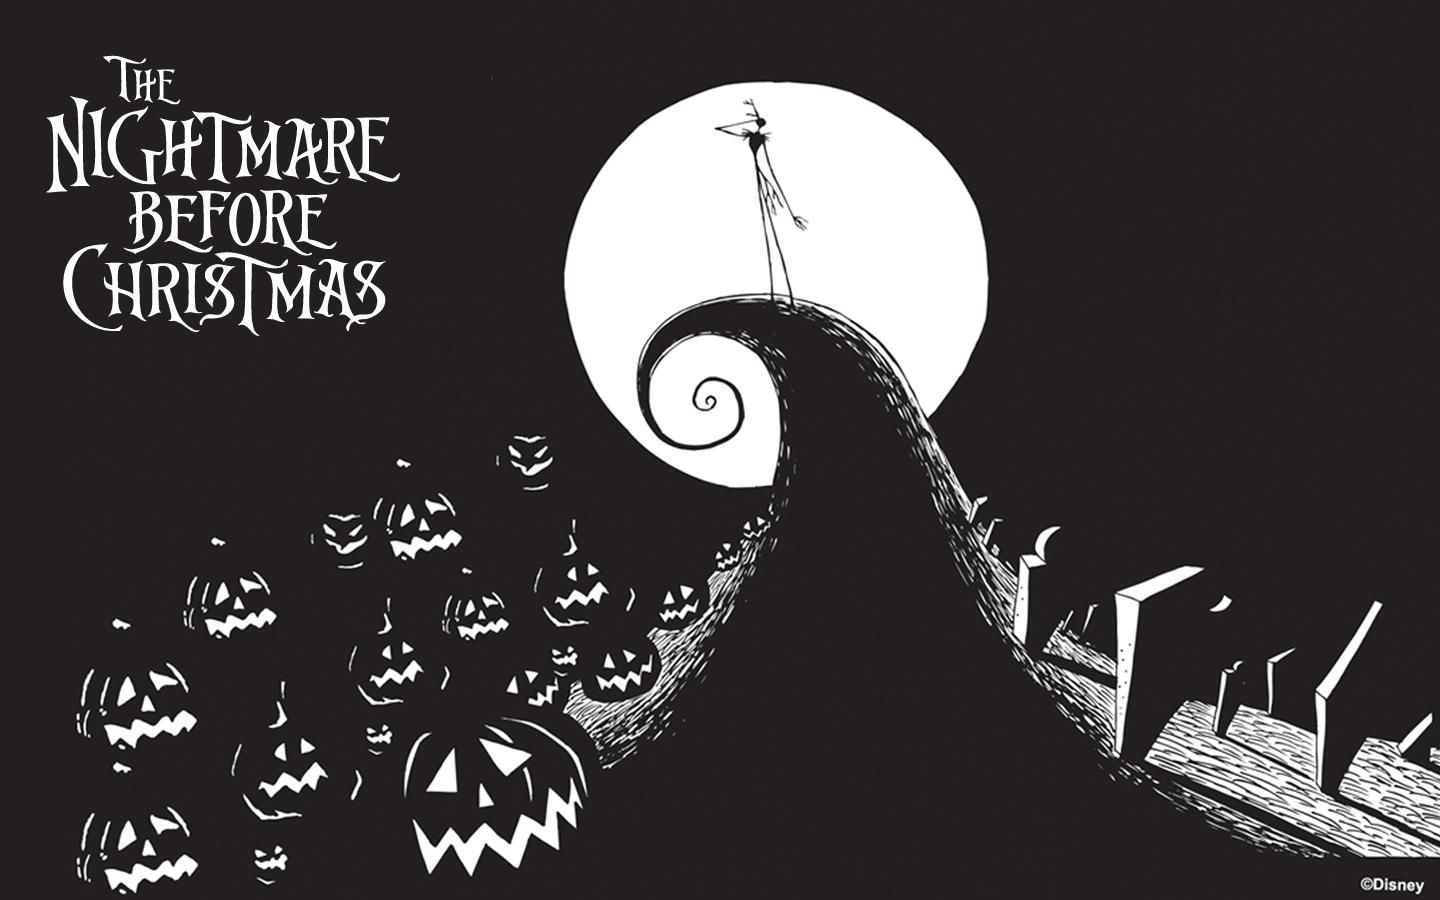 Http Hdwallpapersfit Com Wp Content Uploads 2015 04 Nig Nightmare Before Christmas Wallpaper Nightmare Before Christmas Characters Nightmare Before Christmas